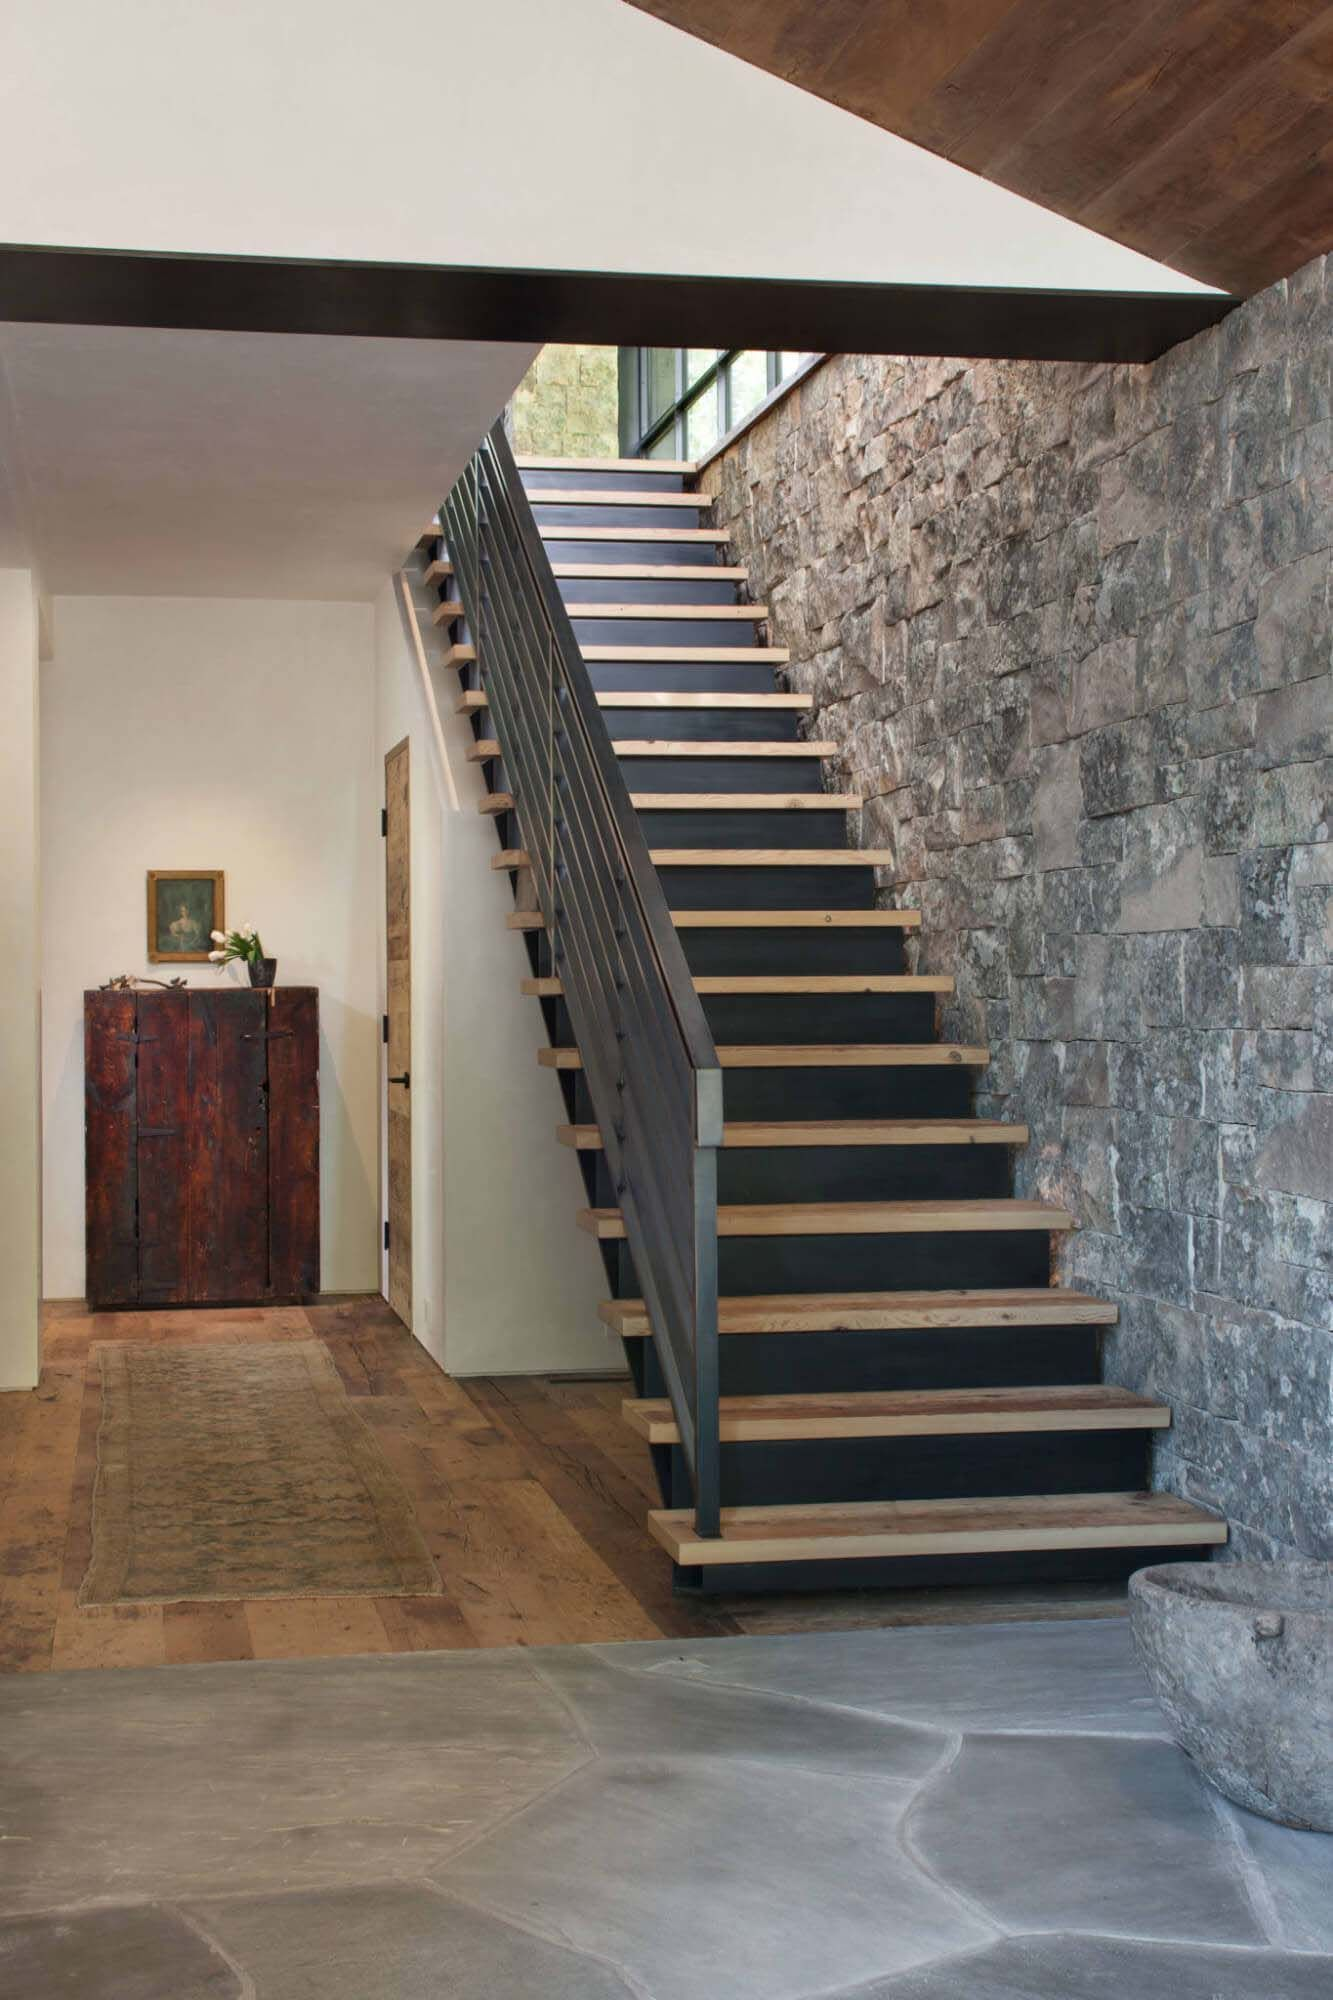 Stair stairway staircase colorado onekindesign colorado homes modern mountain home